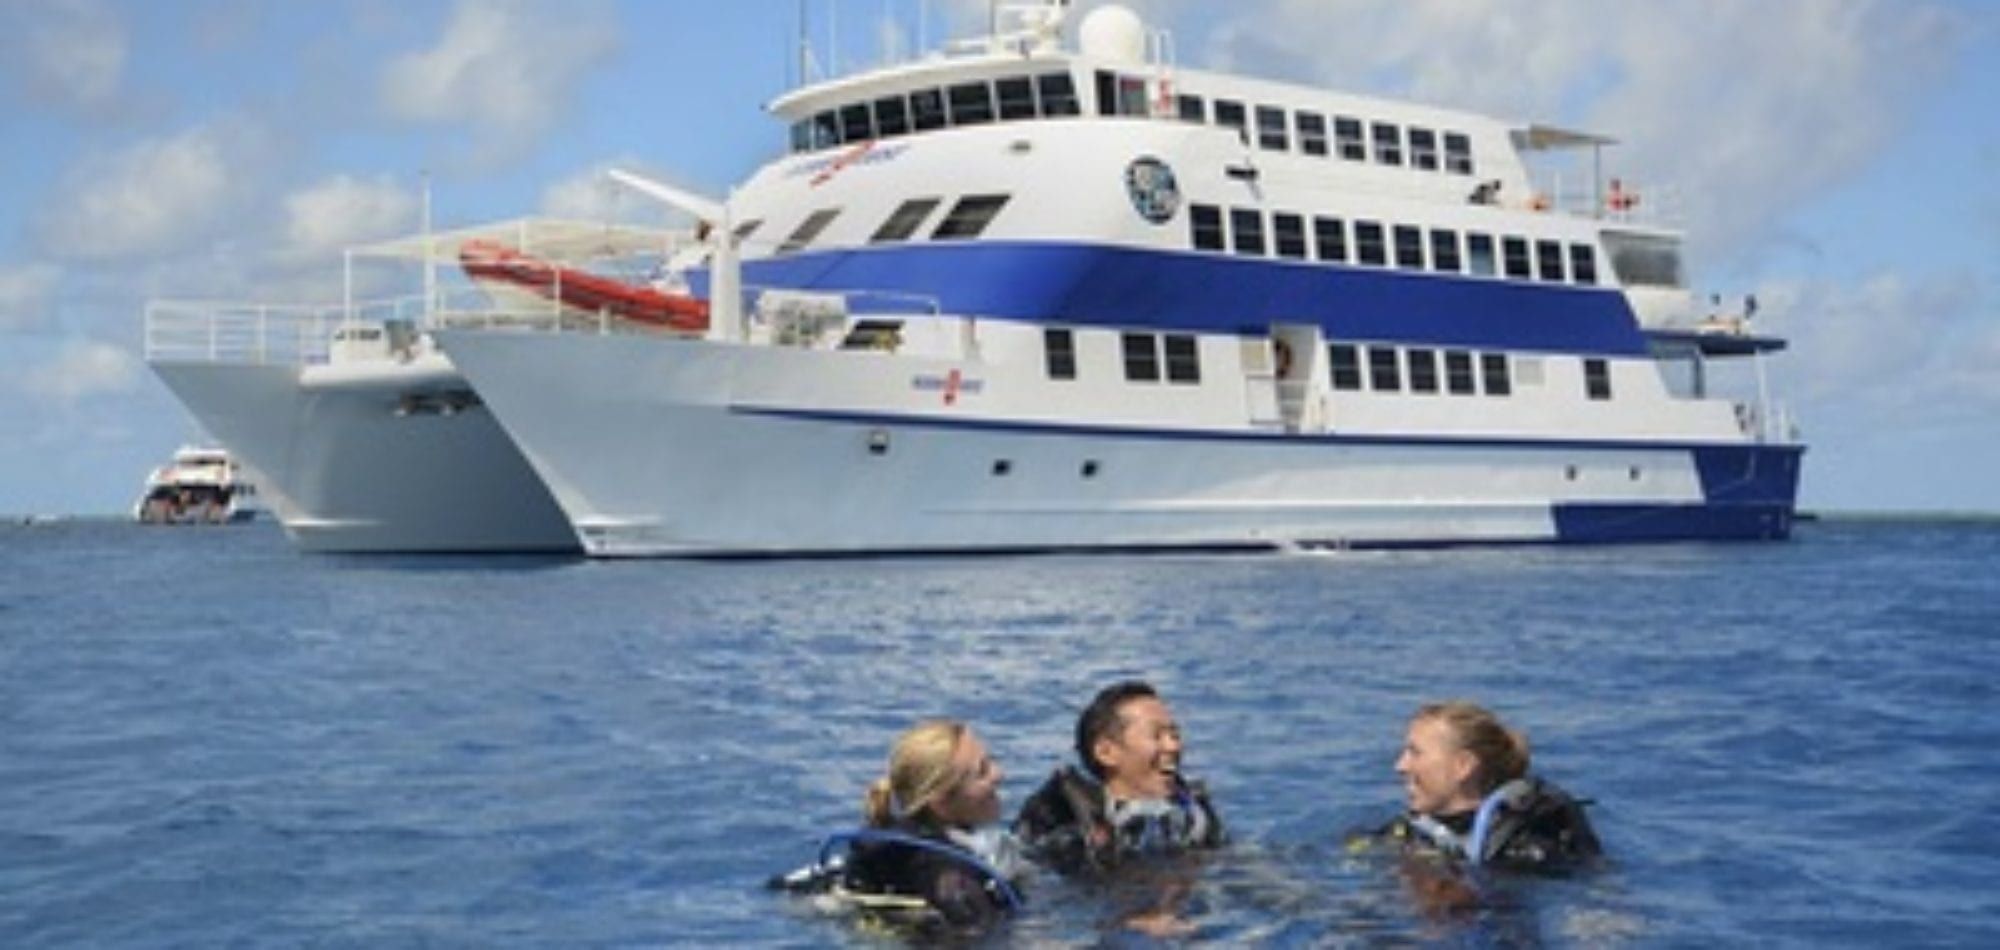 Cairns dive certification - PADI Learn to Dive Course on Oceanquest boat